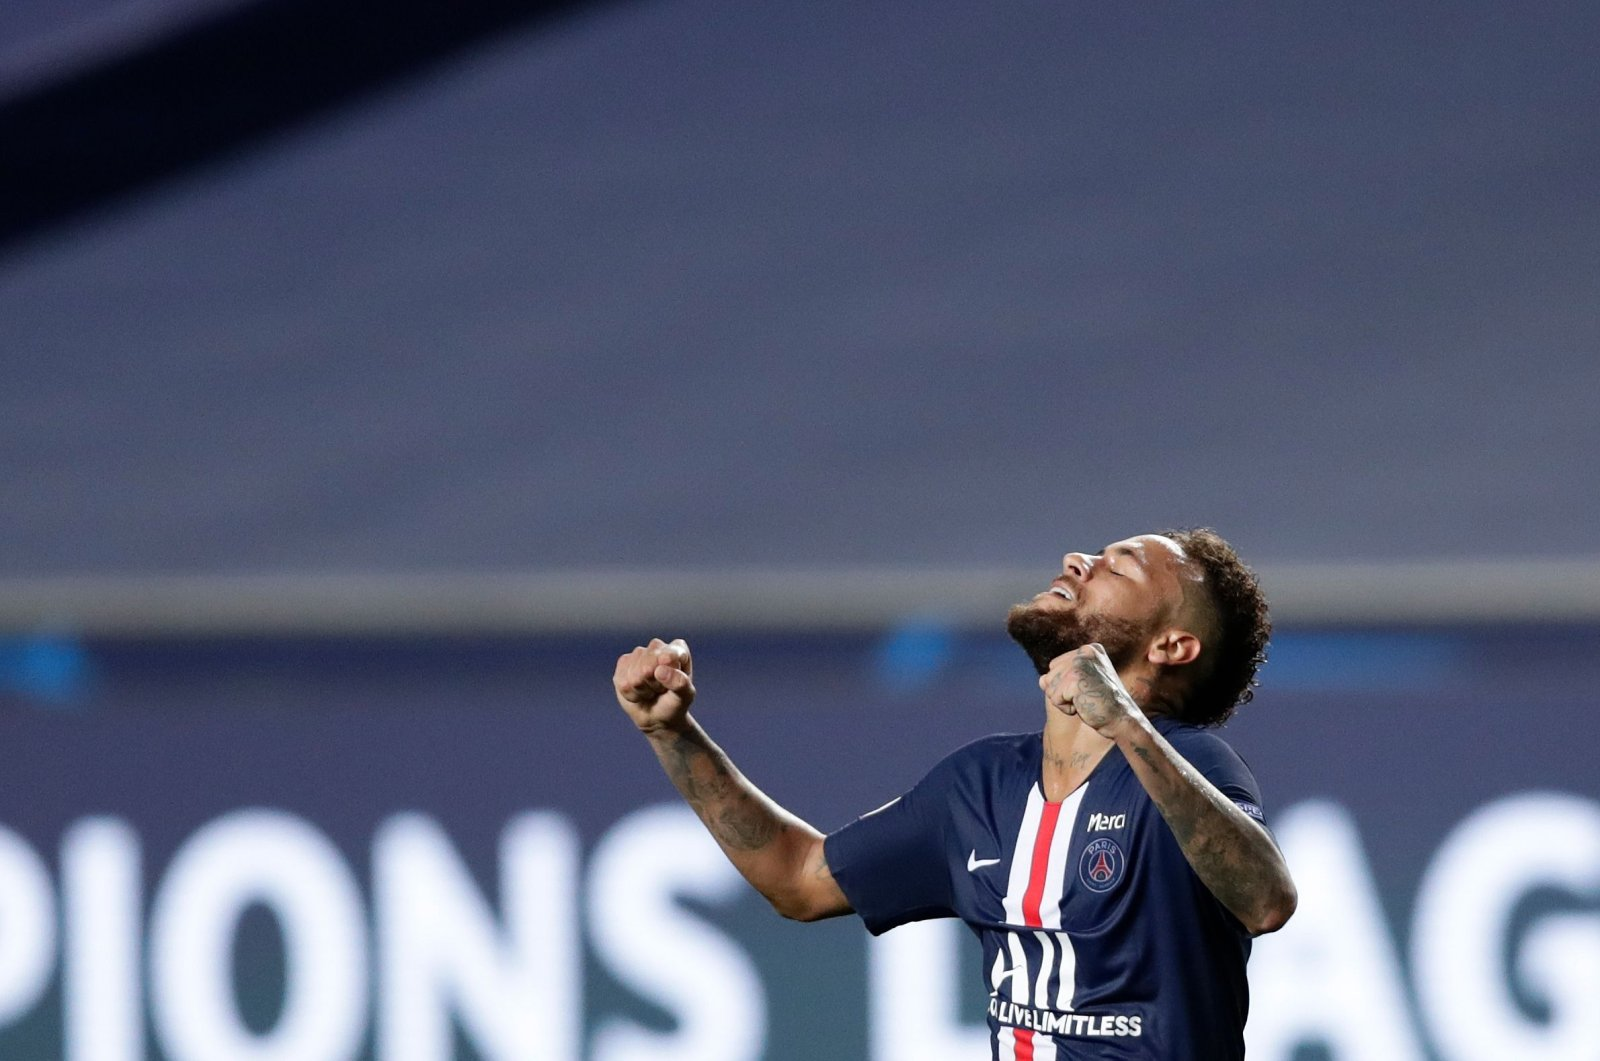 Paris Saint-Germain's Neymar celebrates after defeating Leipzing in the UEFA Champions League semifinal match in Lisbon, Portugal, Aug. 18, 2020. (AFP Photo)